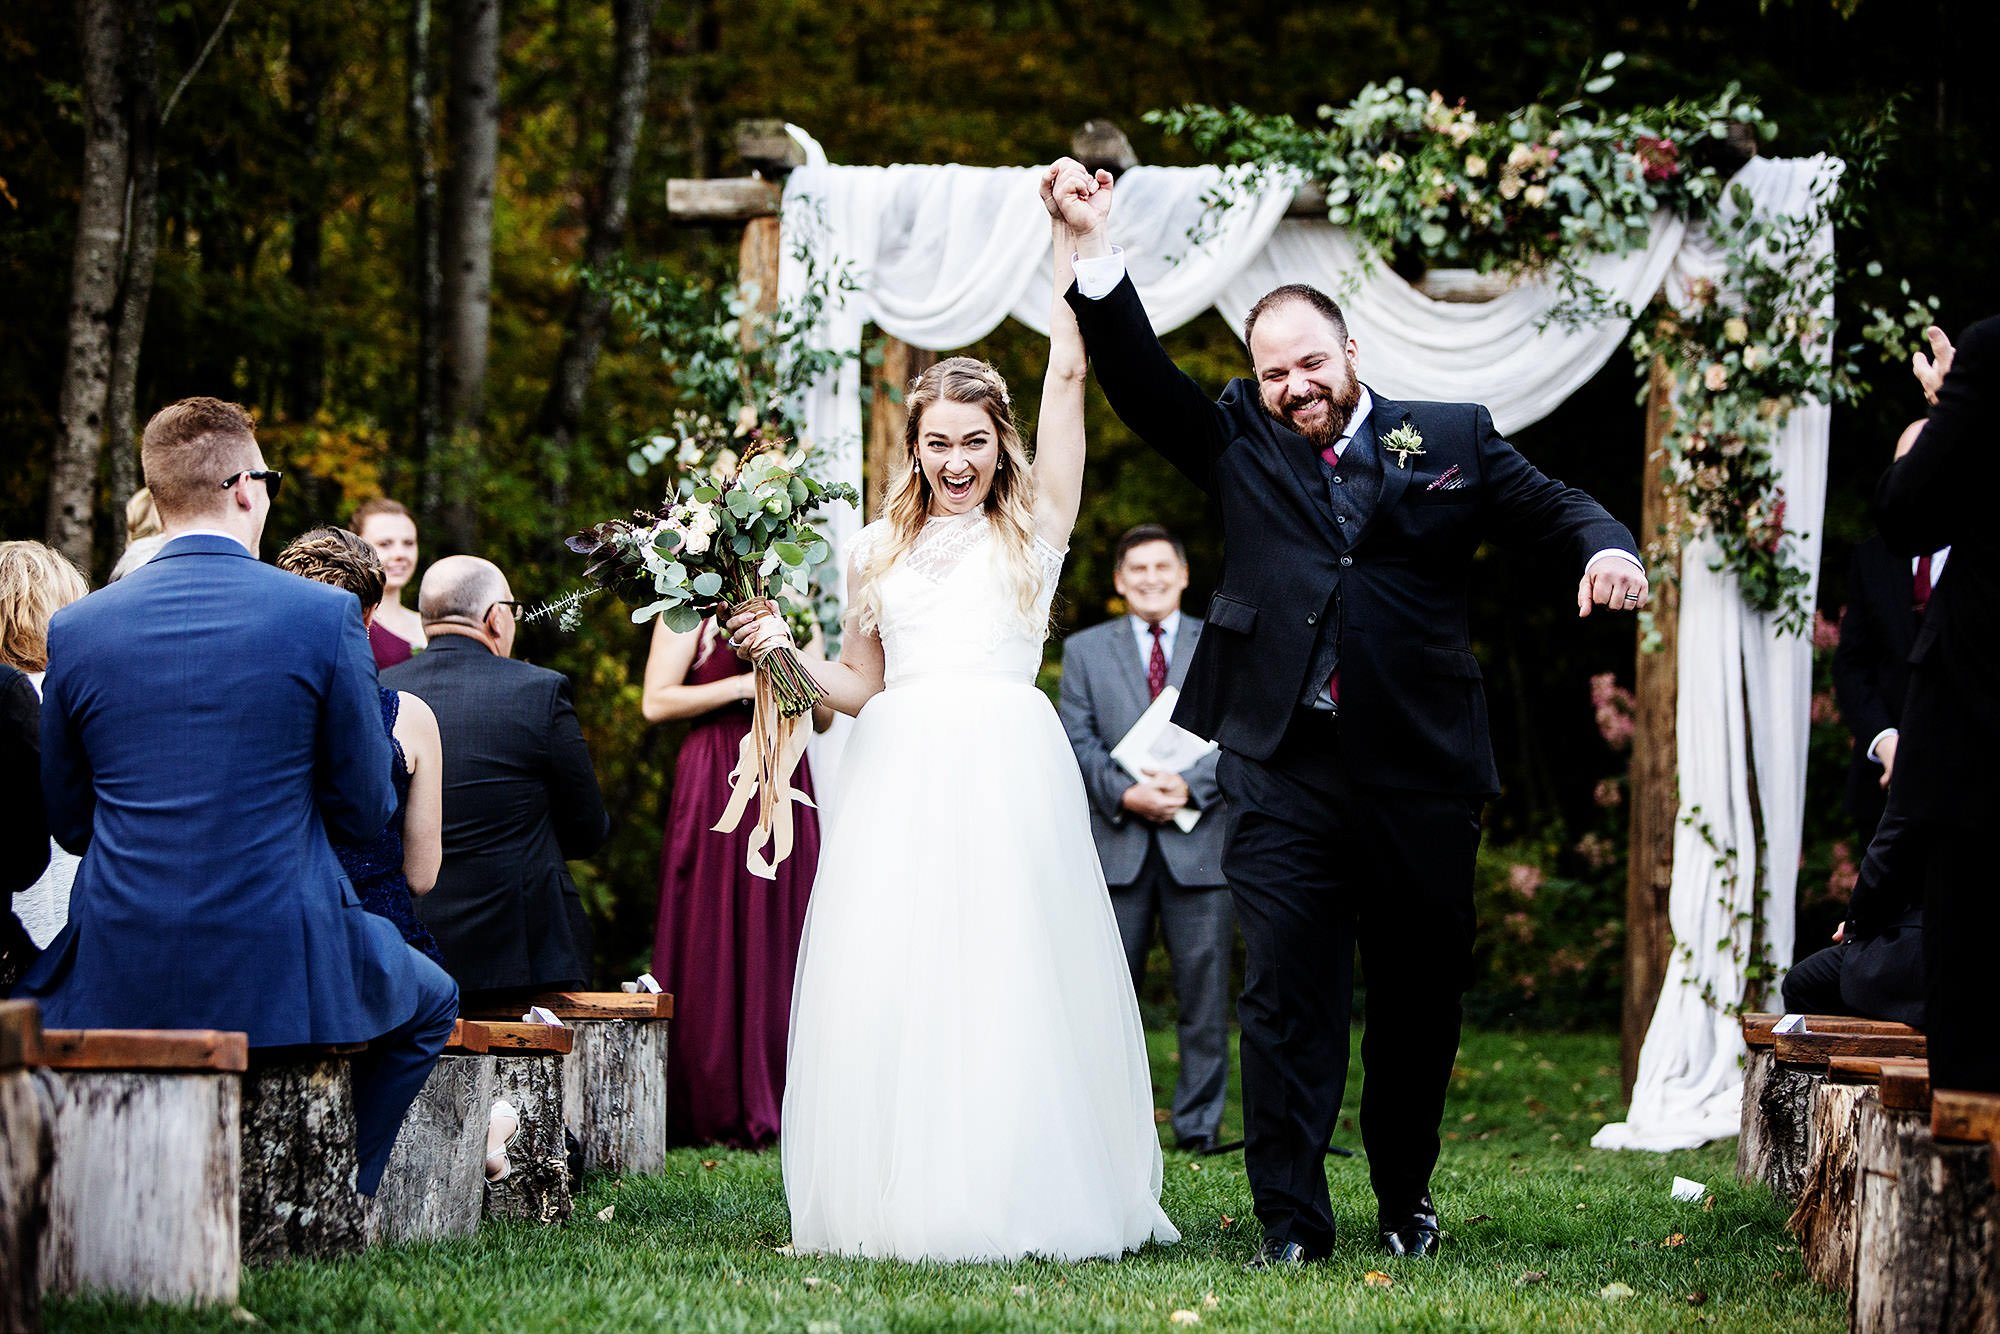 The bride and groom cheer following their ceremony at Mad River Barn Wedding in Waitsfield, VT.